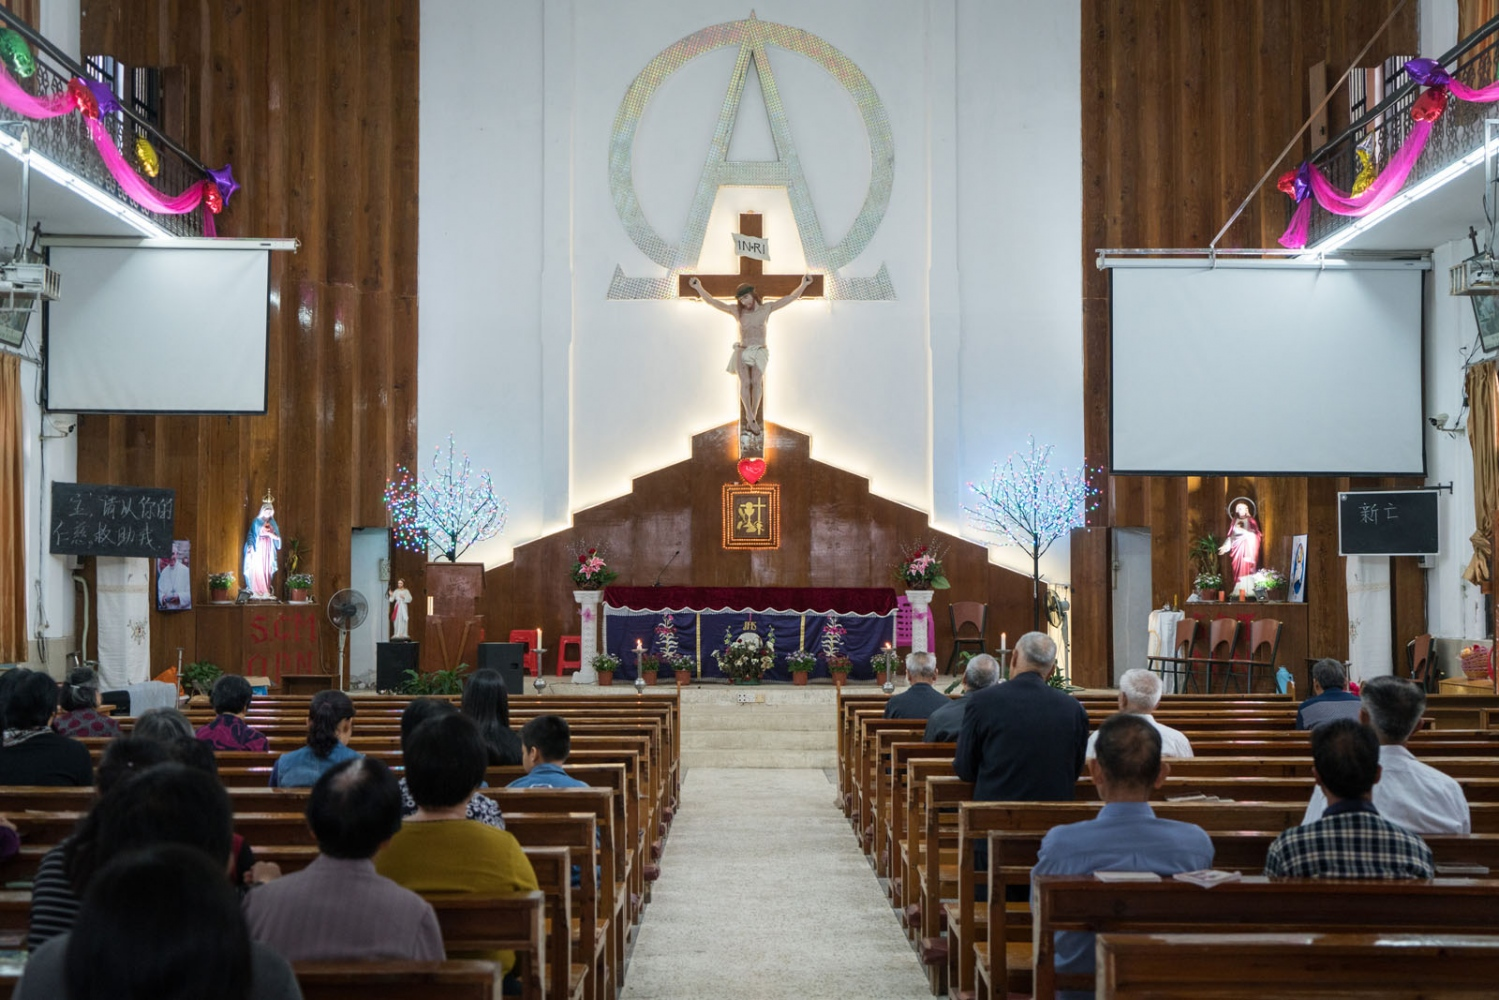 Catholics from nearby villages pray and chant in Bobei Catholic Church in Guangdong province, China on the morning of March 4, 2018.